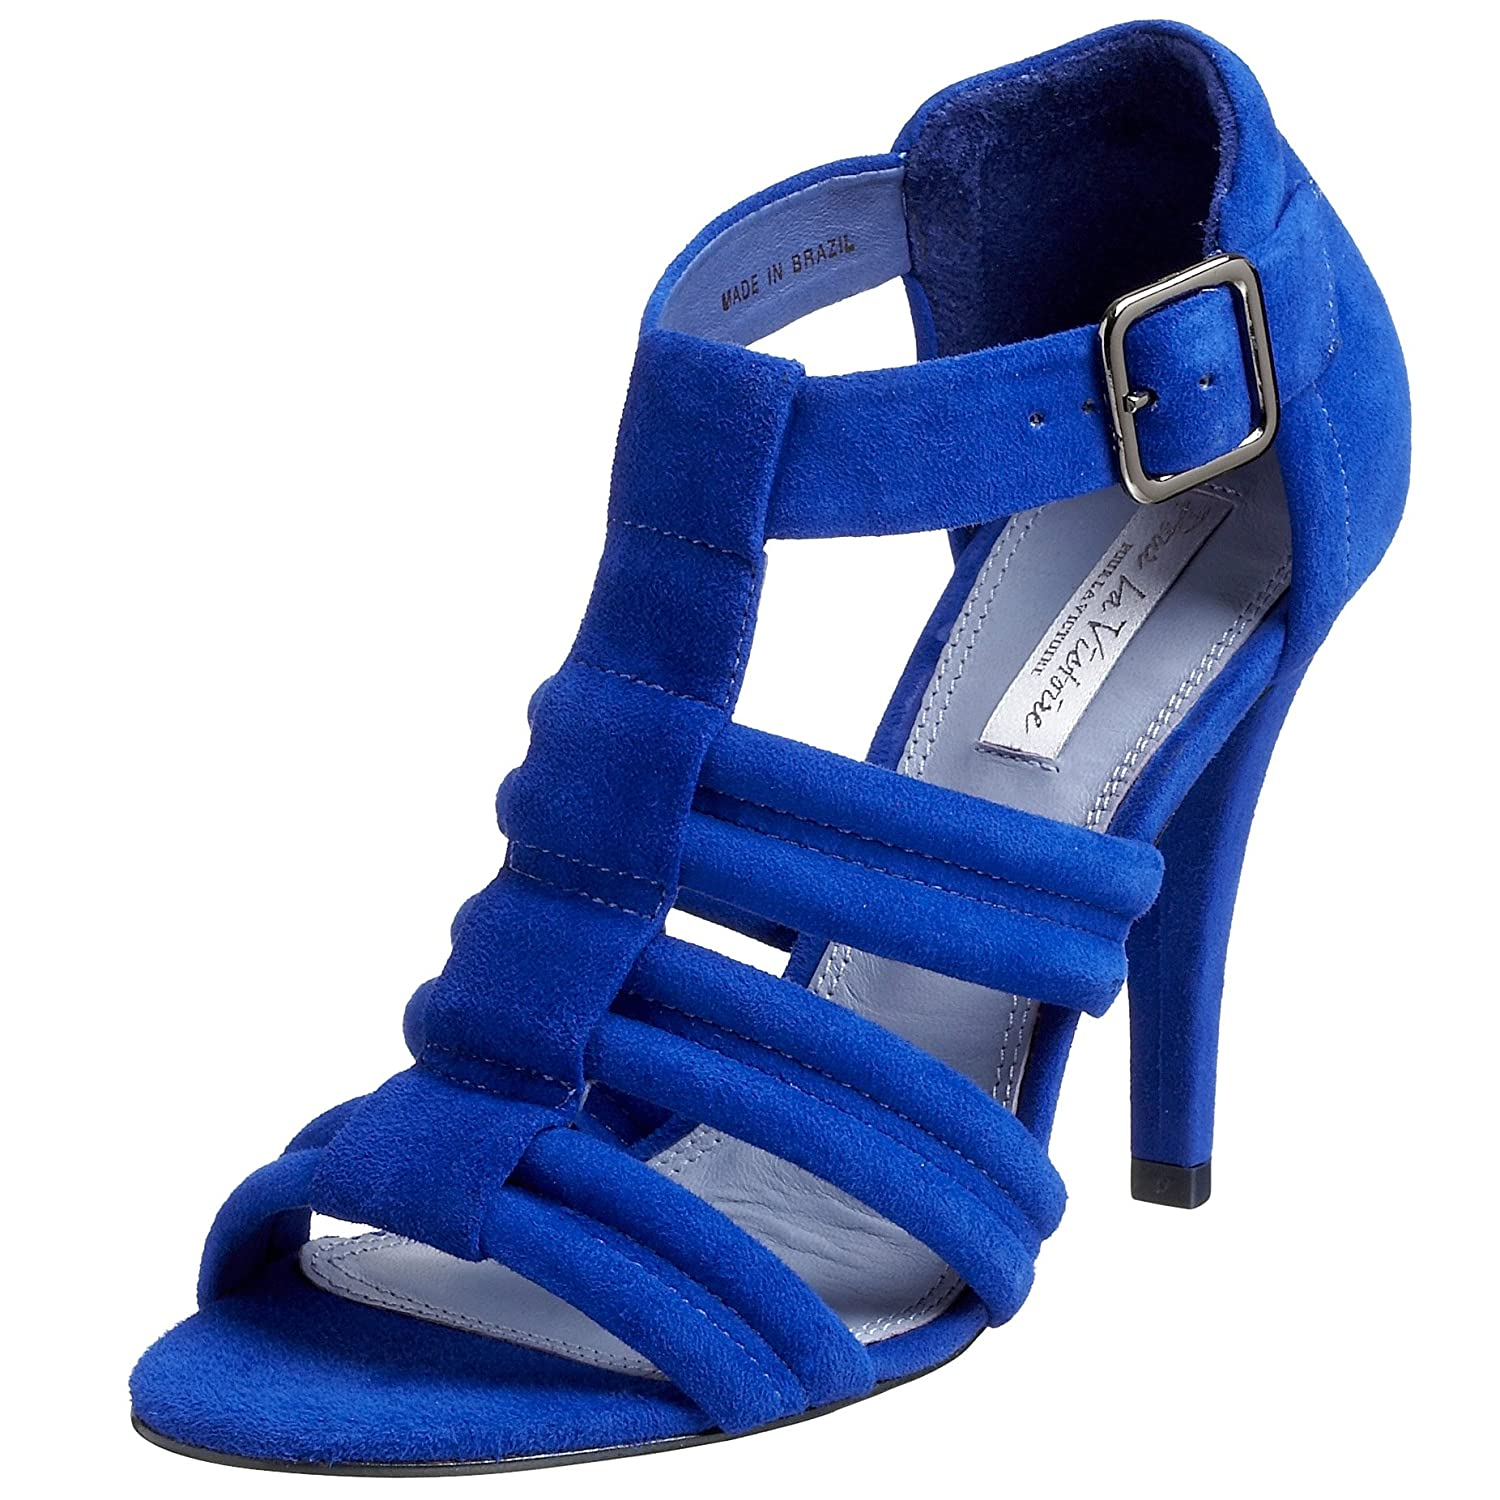 Pour La Victoire Erica Sandal - Free Overnight Shipping & Return Shipping: Endless.com from endless.com